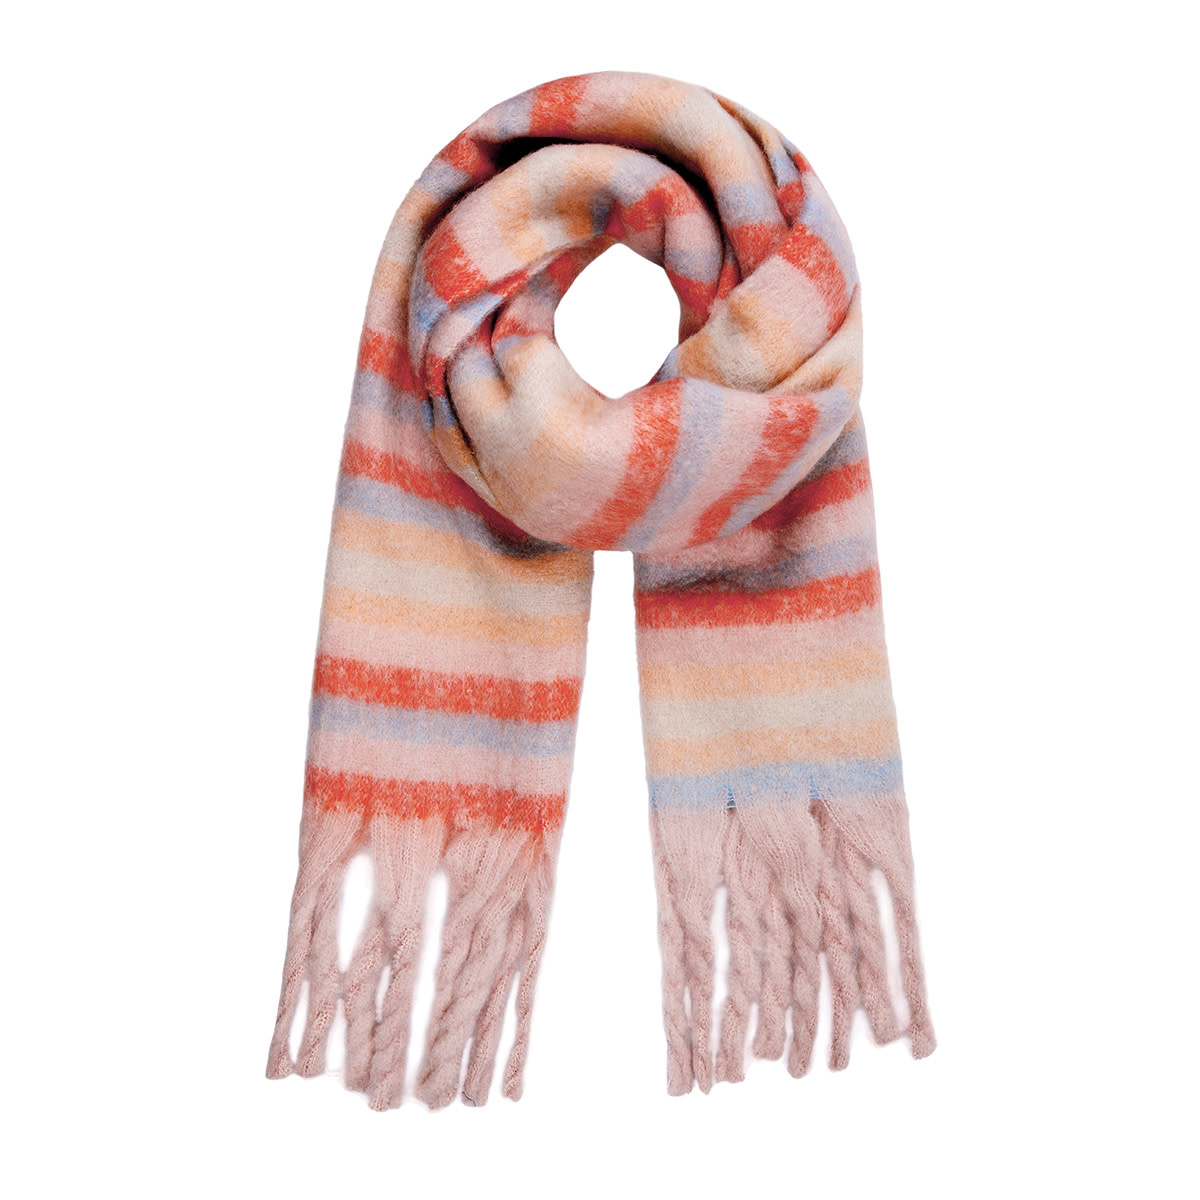 With love Striped scarf pink